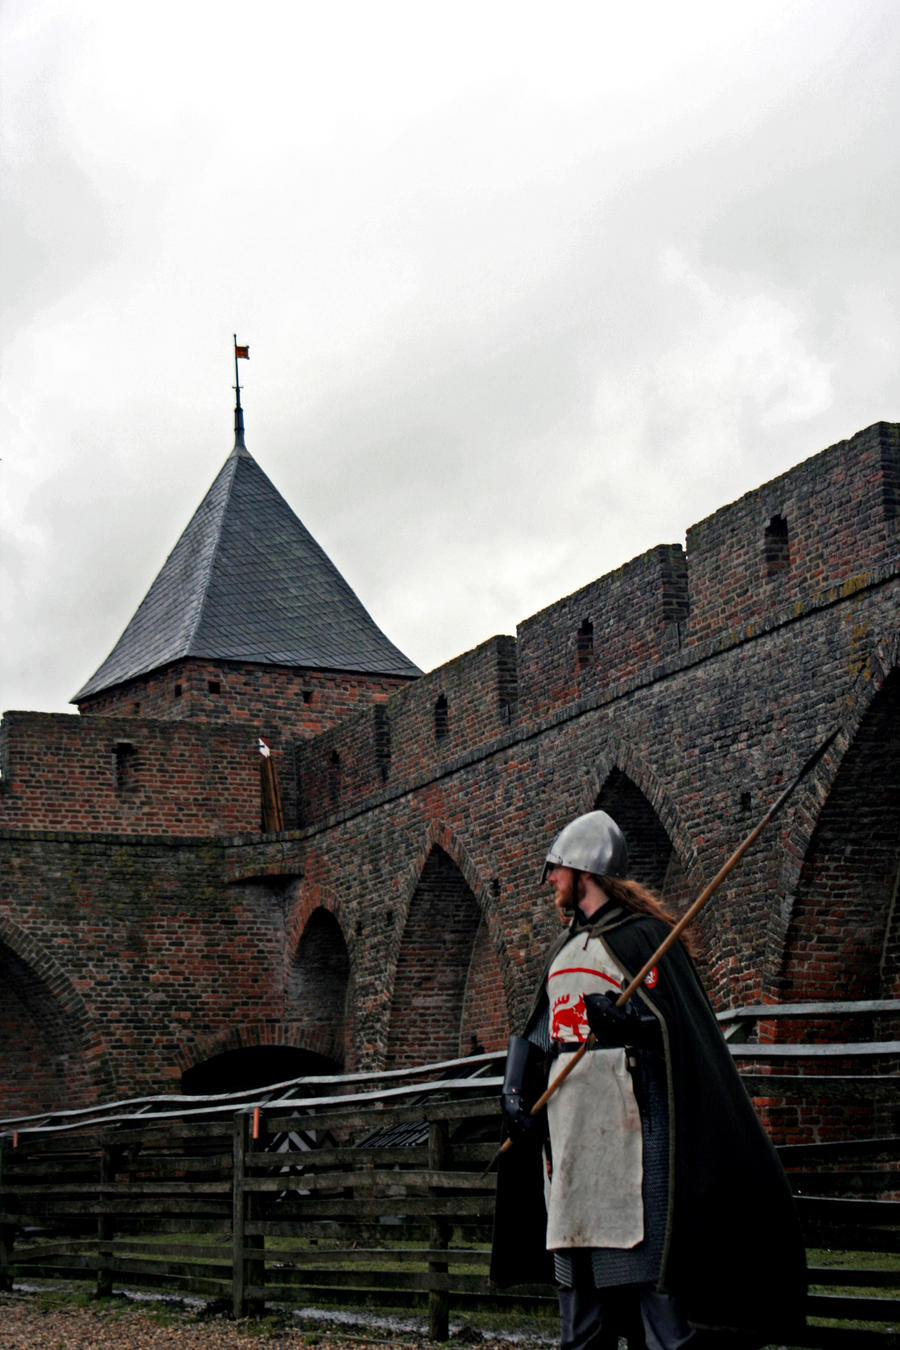 Doornenburg guardian 2 by Dewfooter